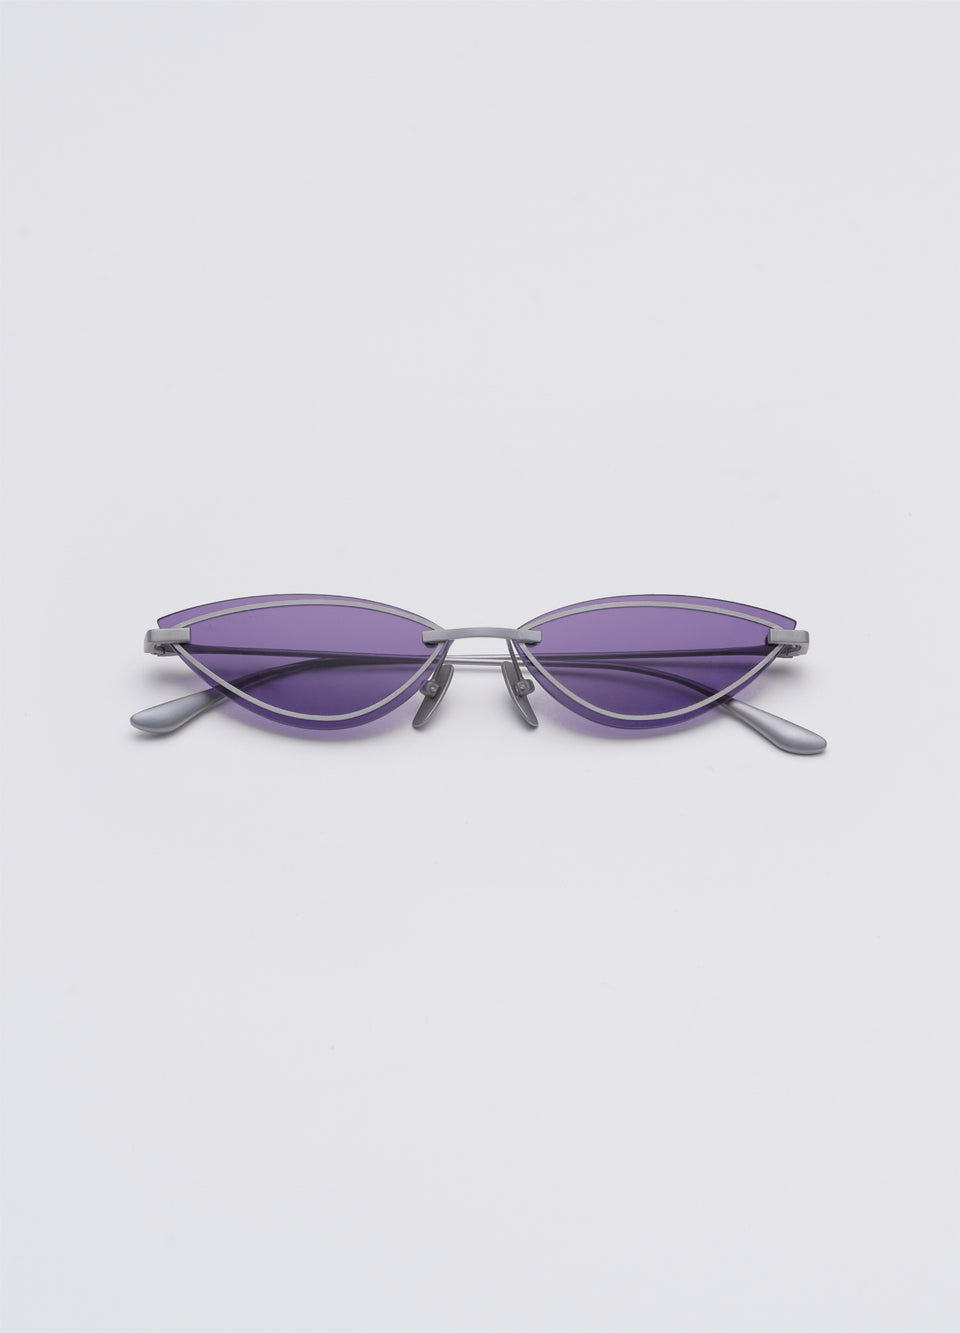 A SOCIETY LOLA - Purple Titanium Cat-Eye Sunglasses Front